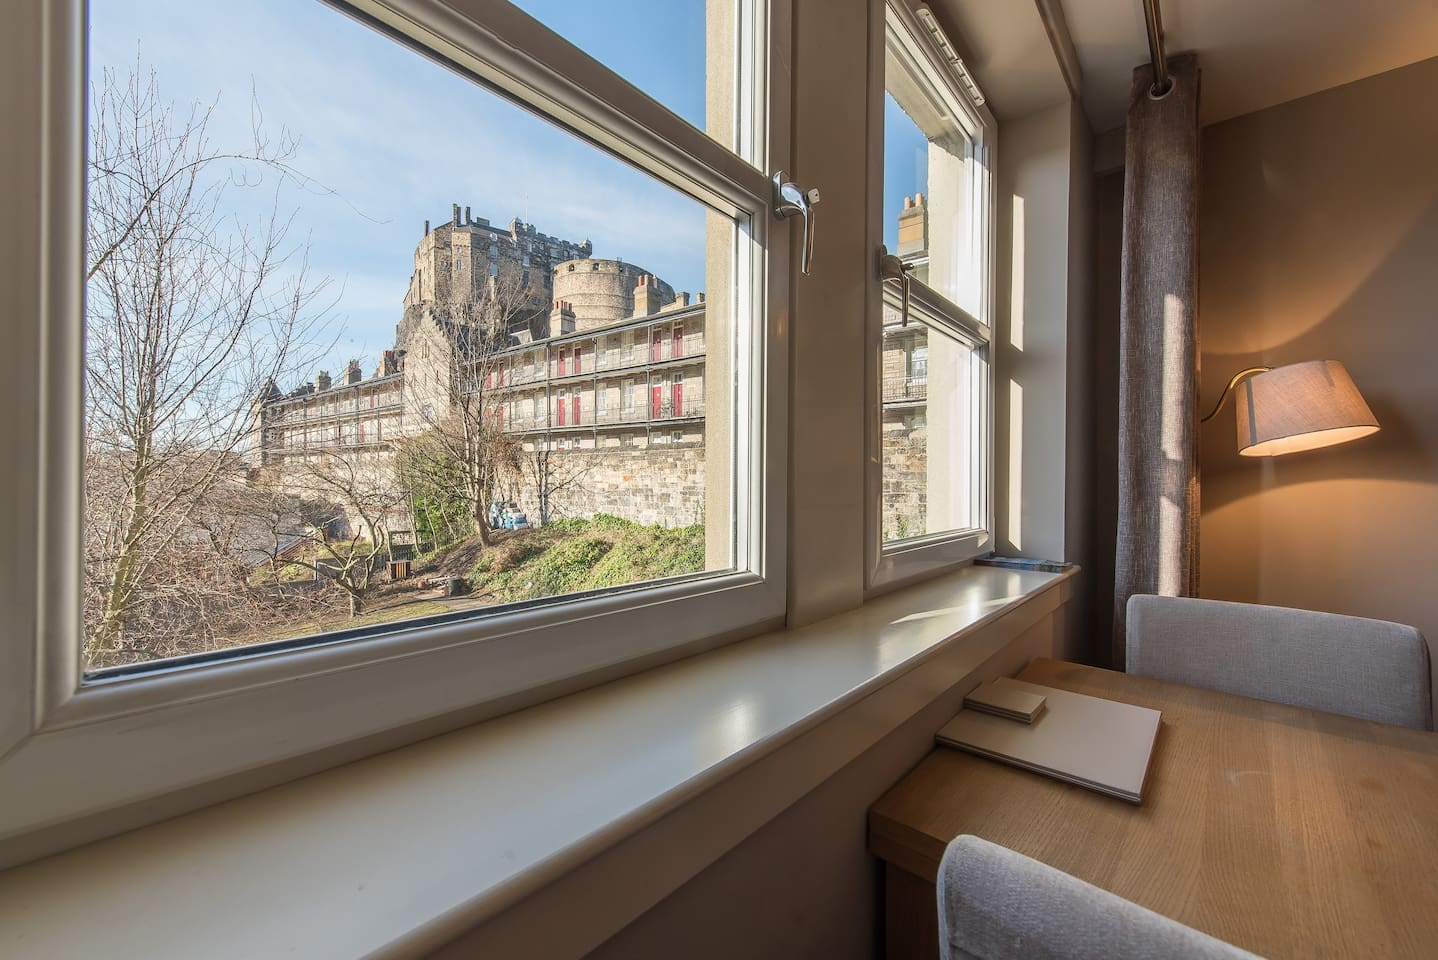 The view of Edinburgh Castle from the living room.